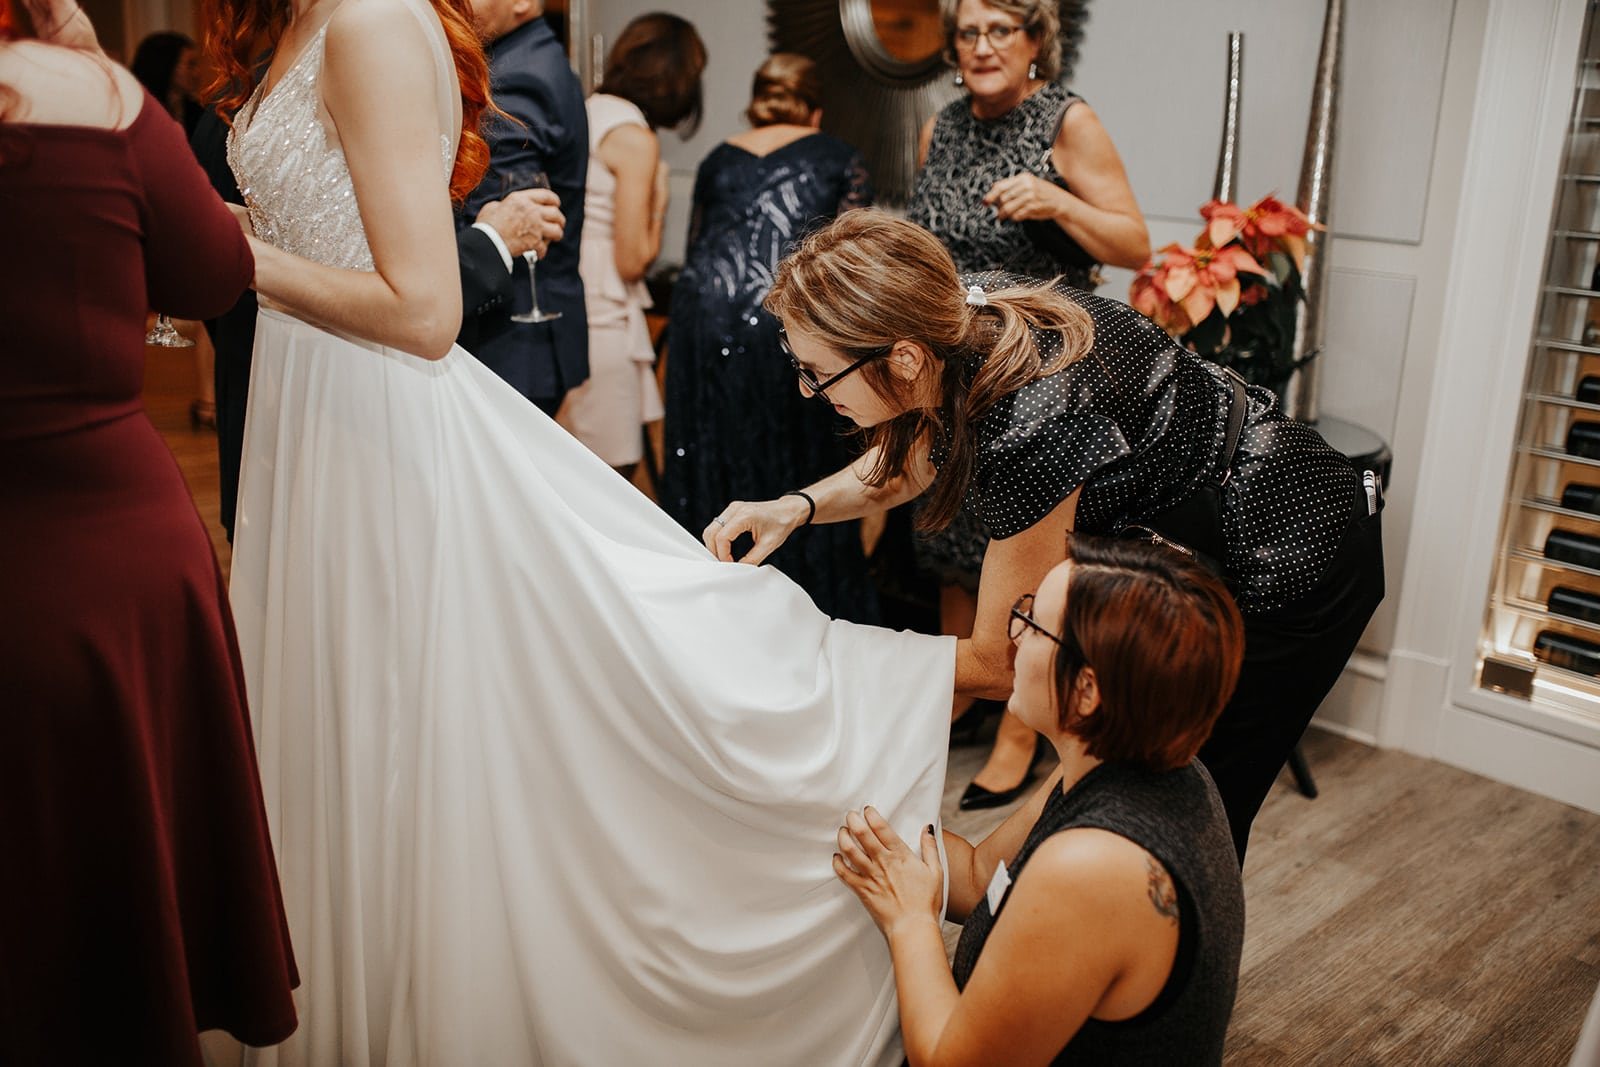 wedding planner gathers bridal gown during wedding to bustle it up for easier walking